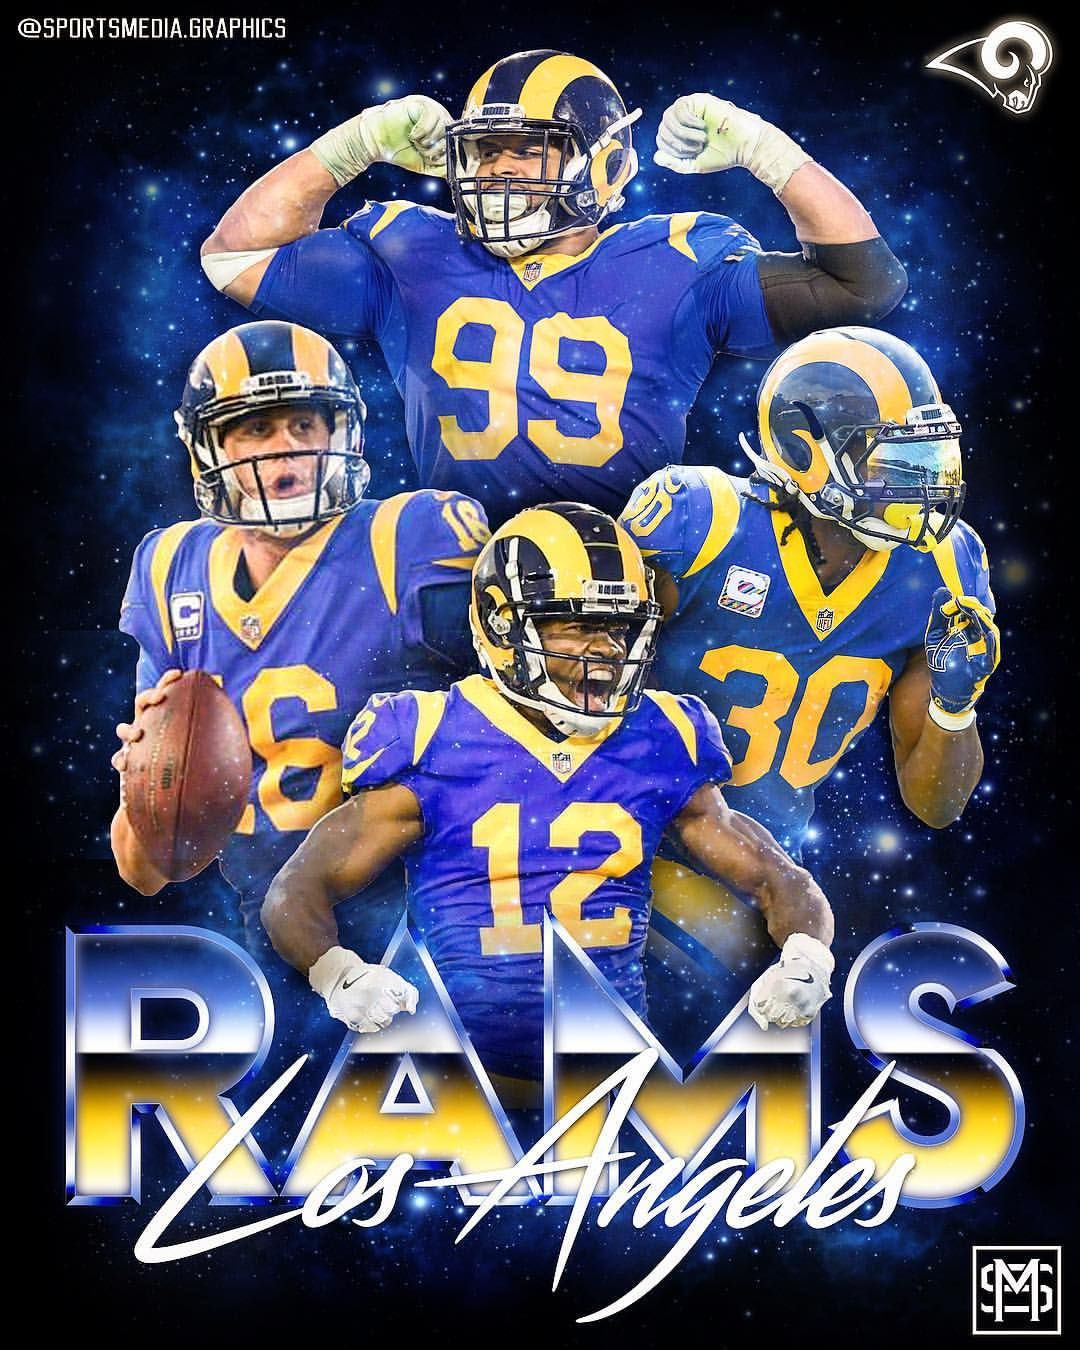 La Rams Design Who You Got Rams Or Cowboys Losangeles Rams Toddgurley Aarondonald Brandincooks Jar La Rams Football Memes Nfl Los Angeles Rams